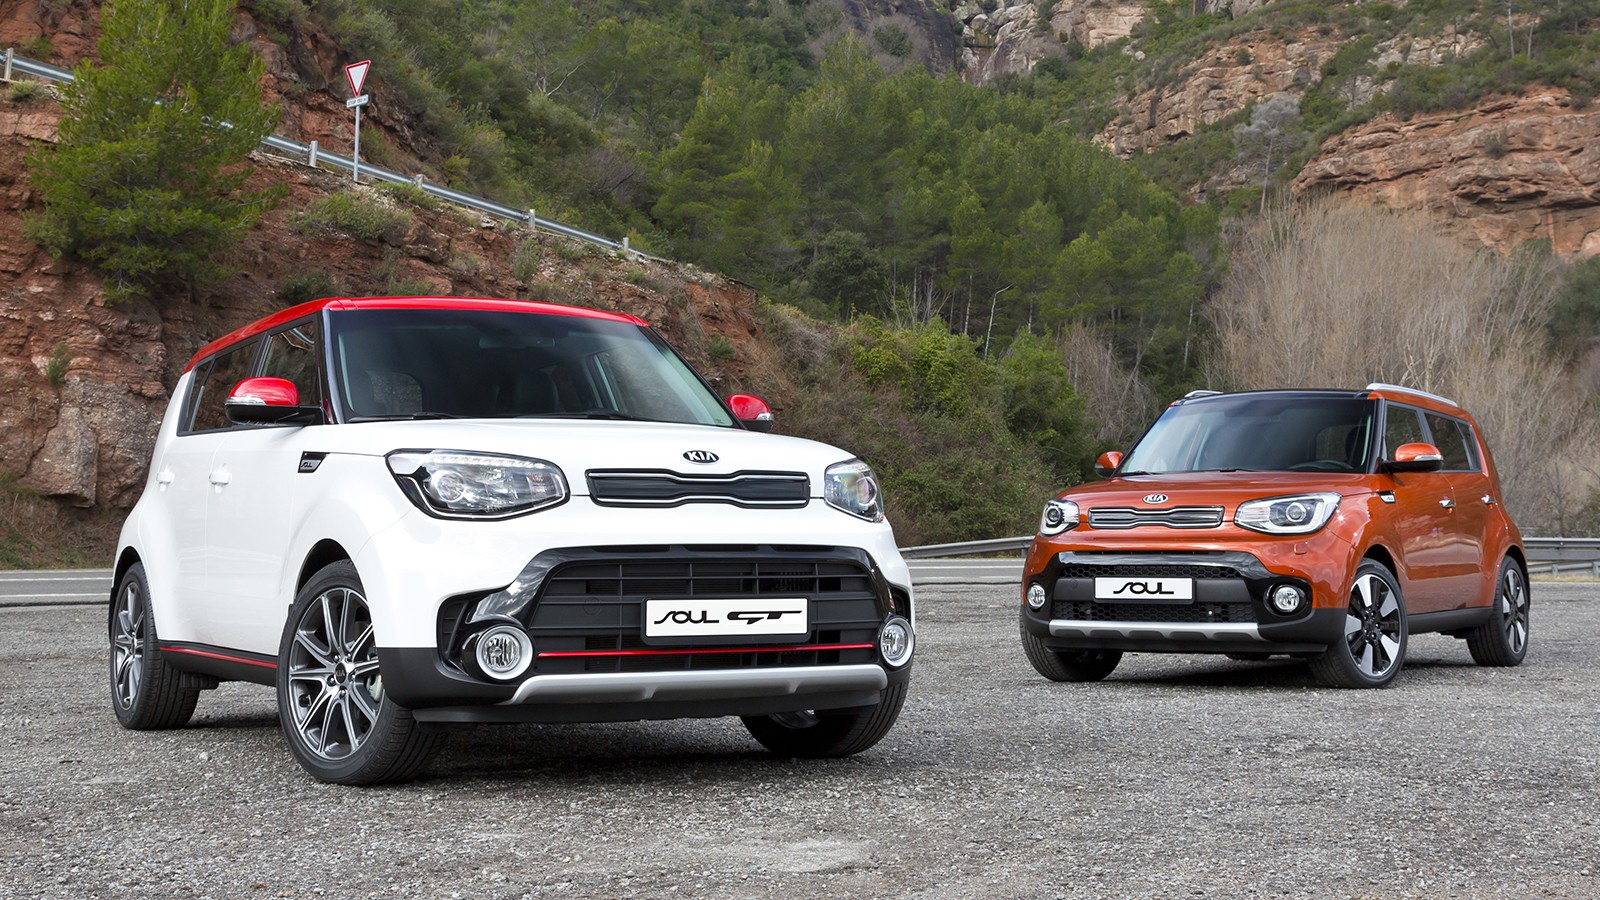 KIA Soul GT and KIA Soul facelift